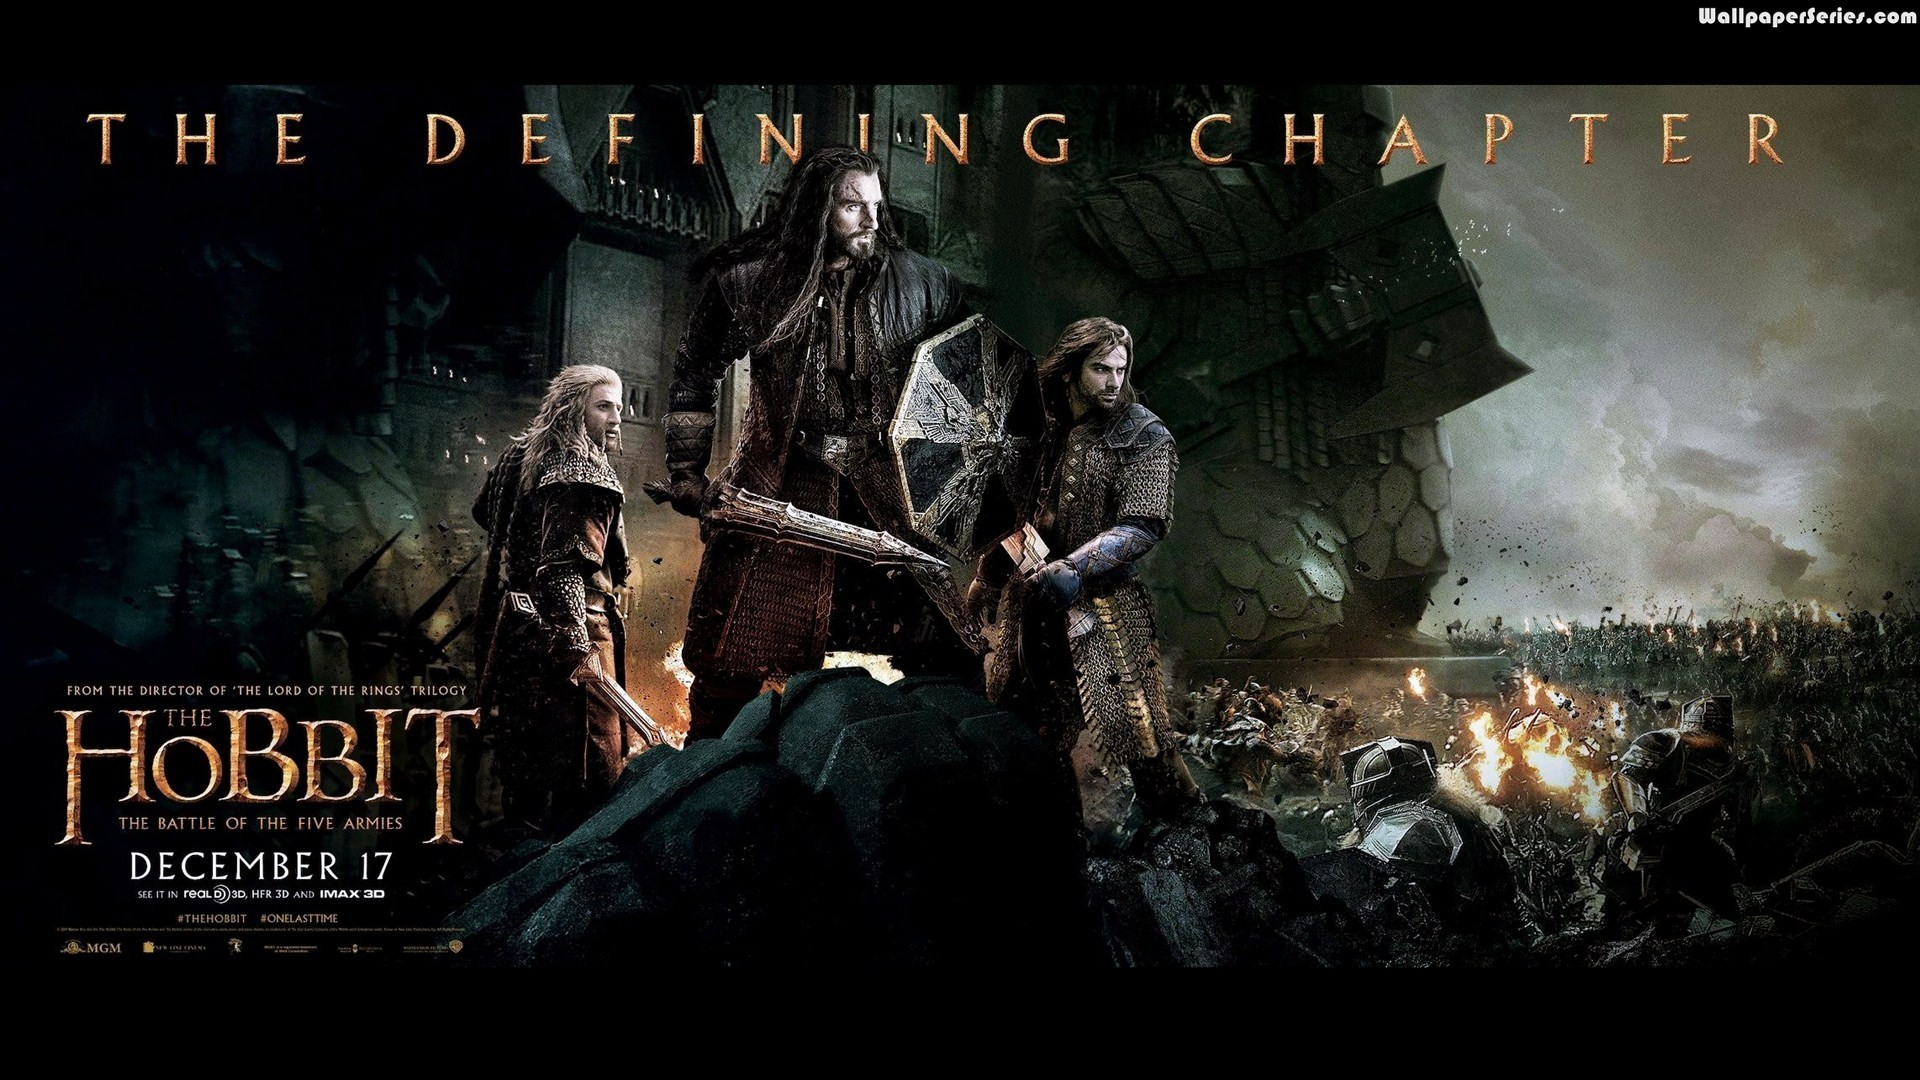 The Hobbit The Battle Of The Five Armies Wallpaper Mobile As Wallpaper HD